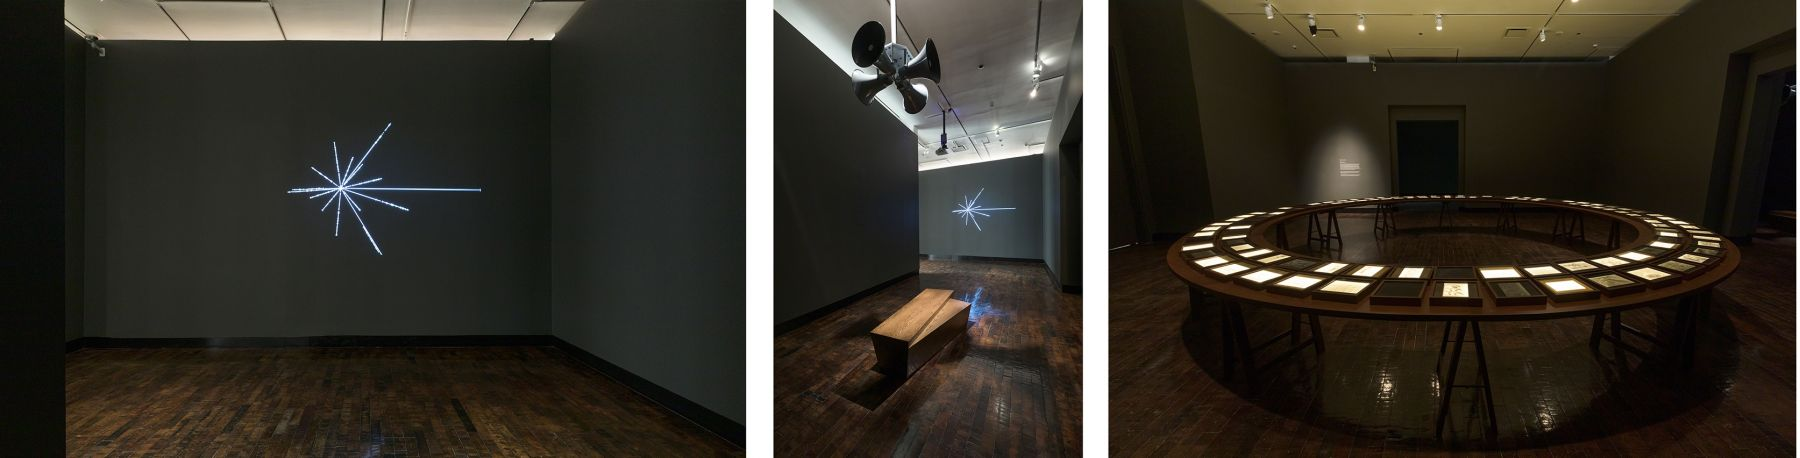 Three installation views of the artwork at the Frist Art Museum. From left to right: an image of the solar location map sculpture, vertical beams of light hanging from ceiling, an image of a bench below a four-horned speaker, and an image of a round wood table with documents placed on top.